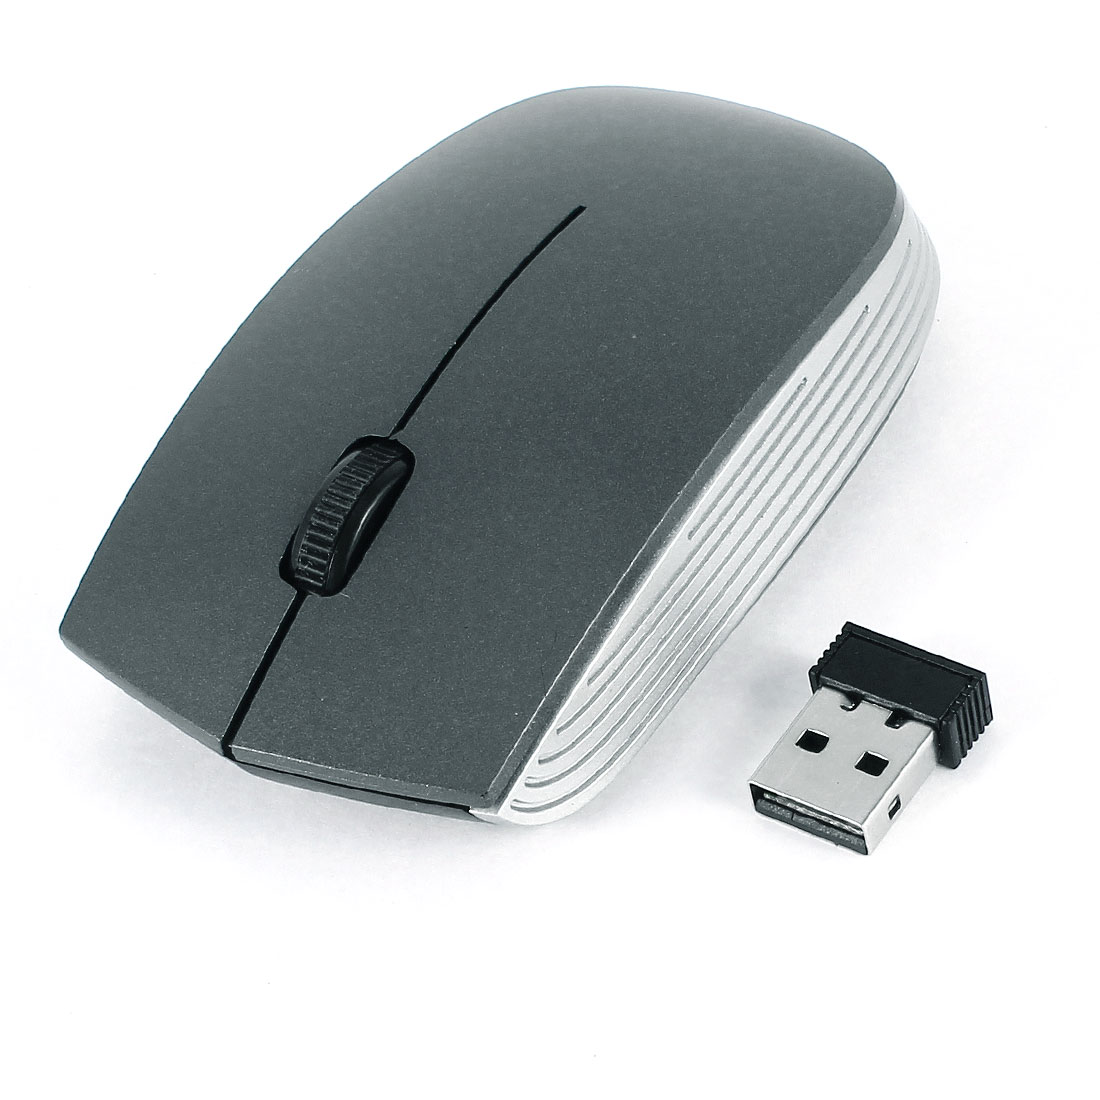 Notebook PC Gray 2.4GHz 800/1600DPI Wireless Mouse Mice w USB Receiver